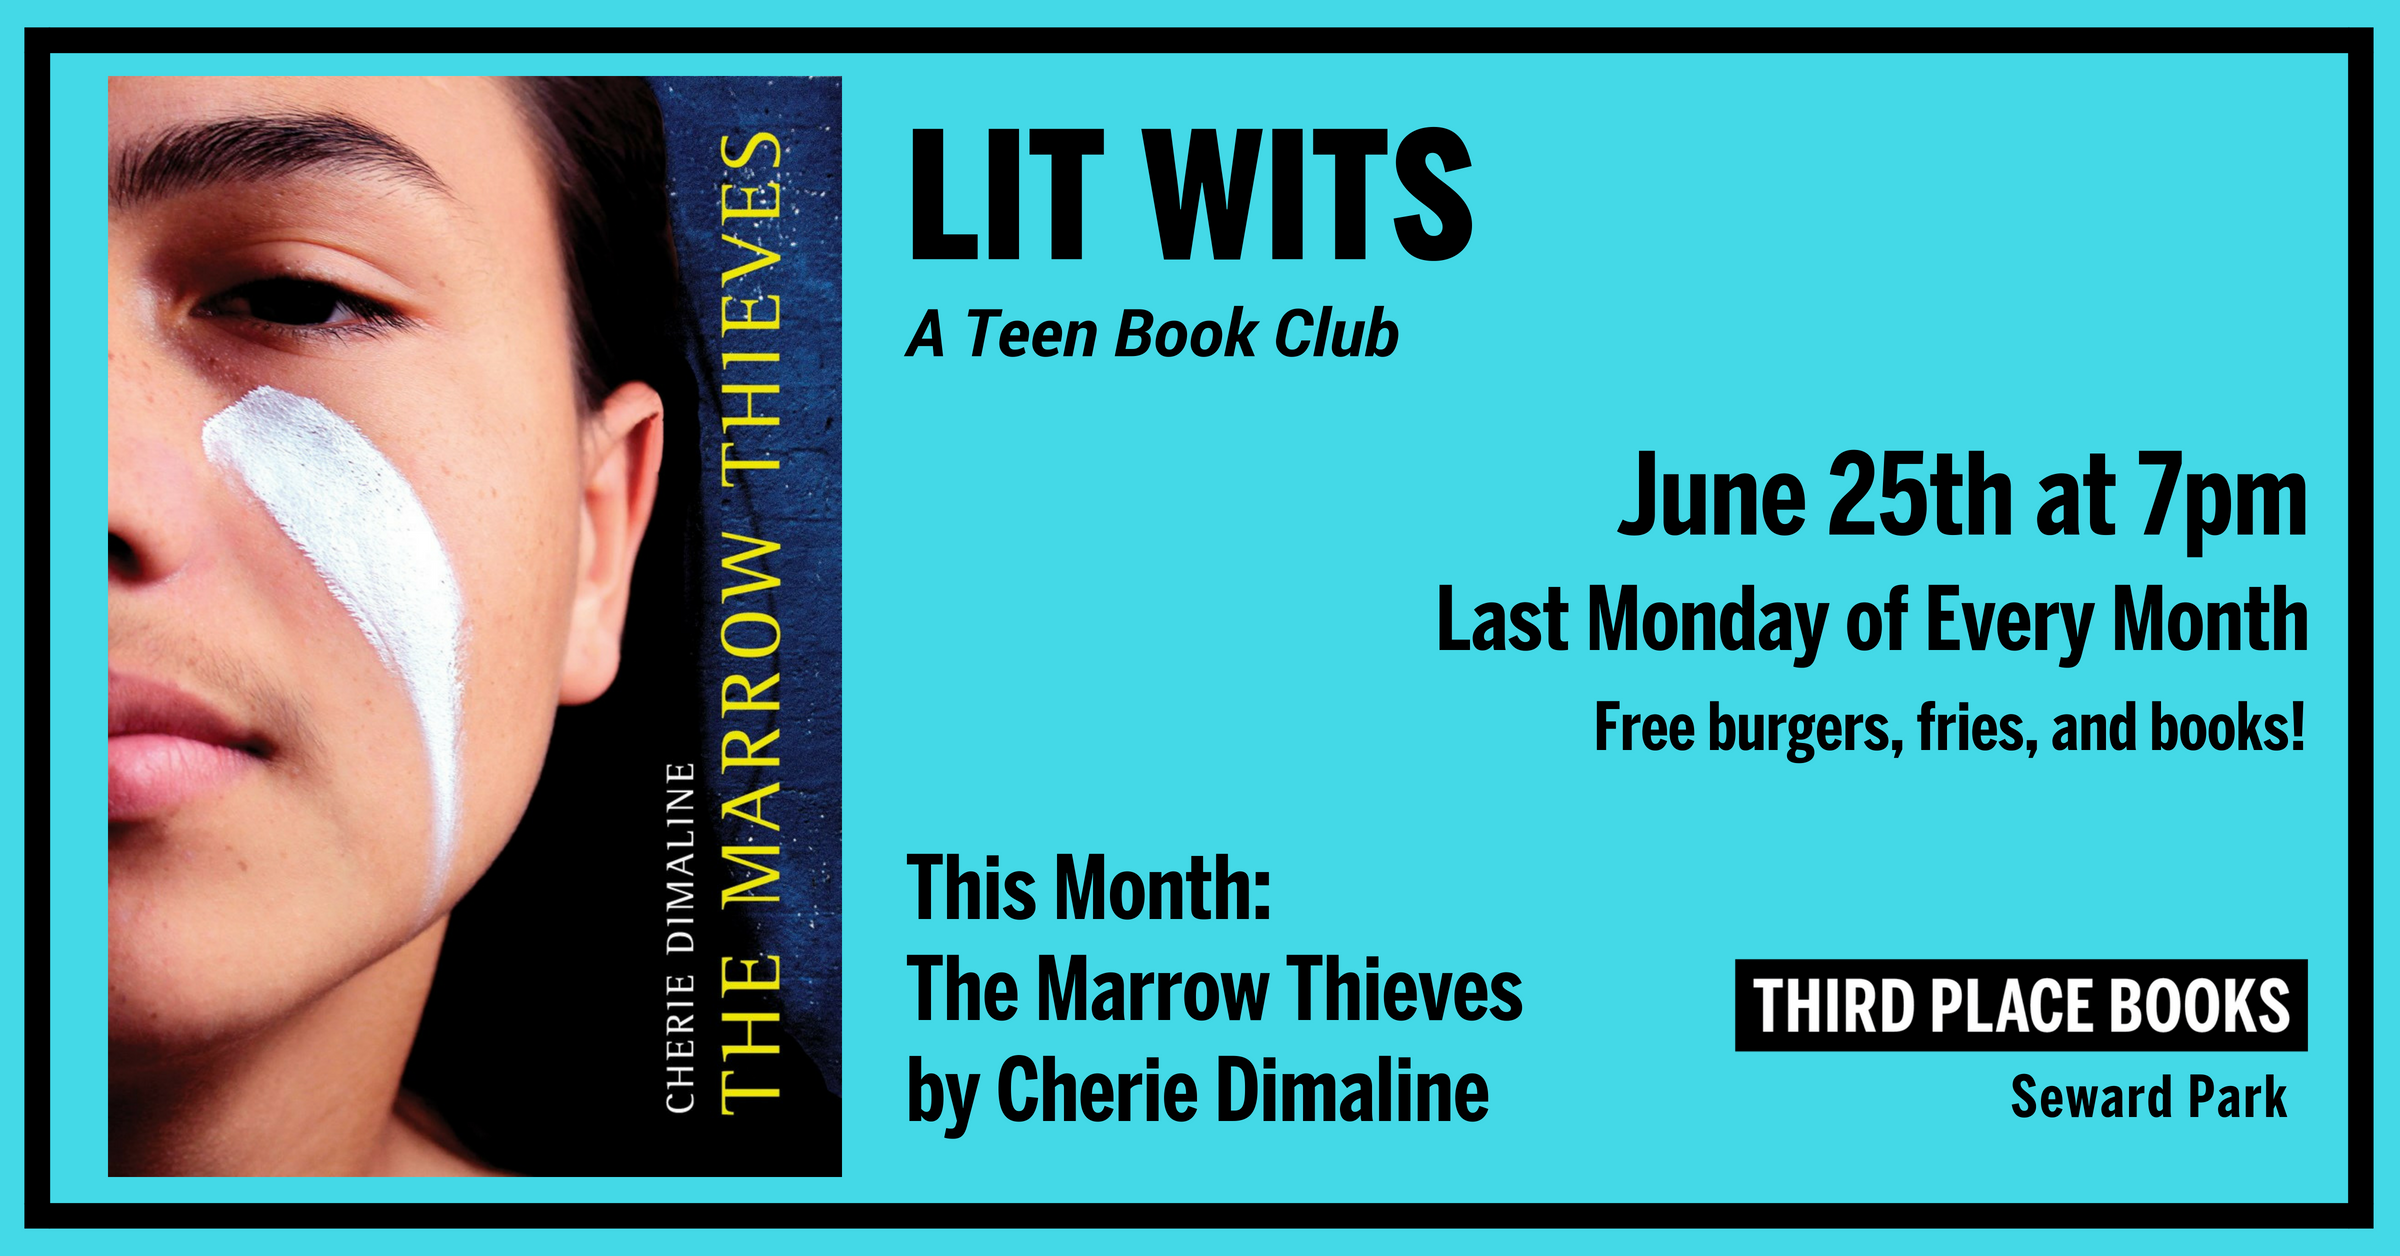 Lit Wits: A Teen Book Club discussing The Marrow Thieves on Monday, June 25th at 7pm